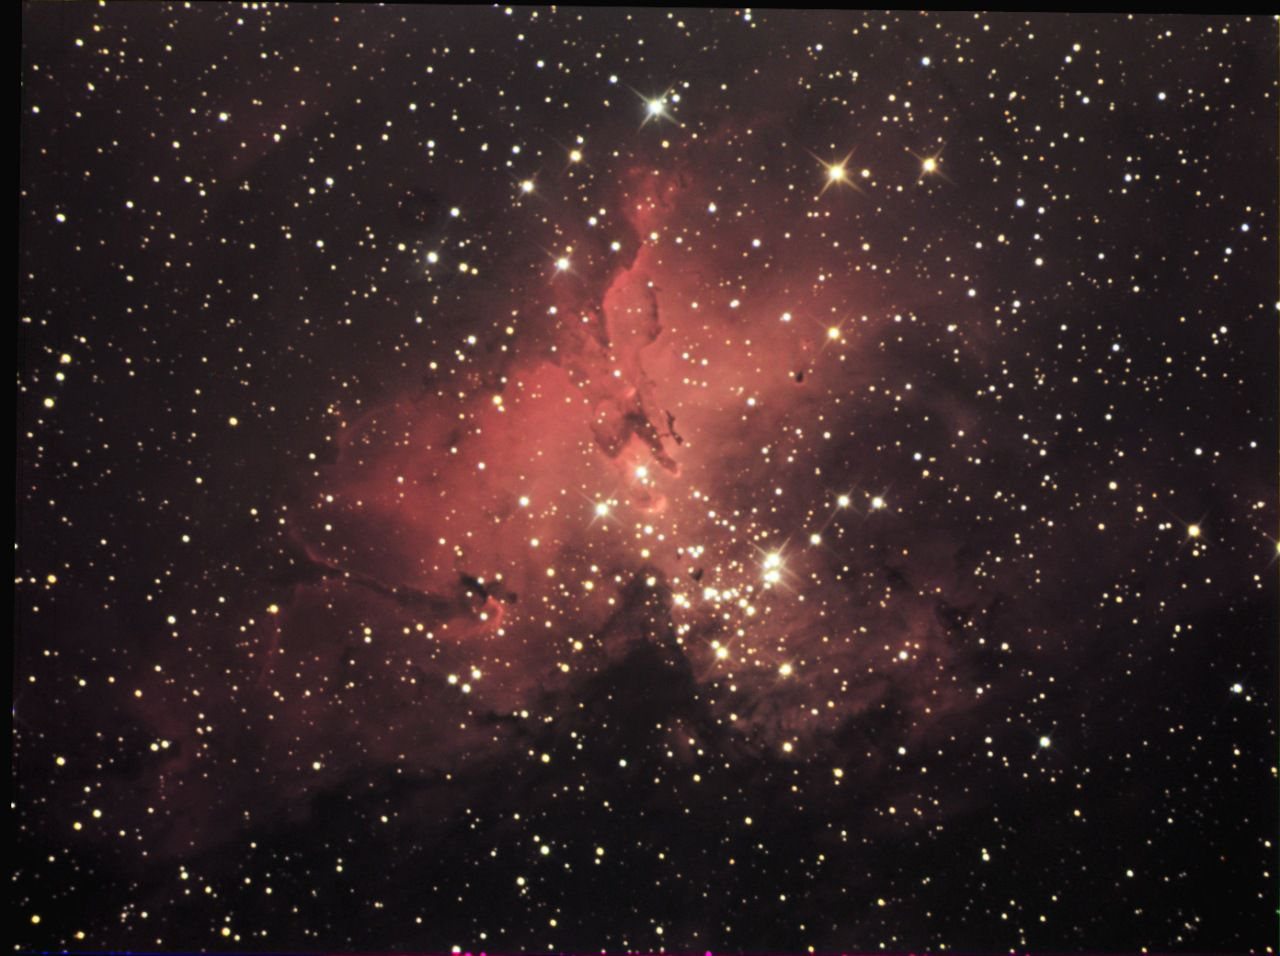 "Photographed by ""Chamois"" (the person's pseudonym on the Futura-Sciences astro forum) using an exposure of 80 minutes on a CCD camera and a 200 mm telescope."